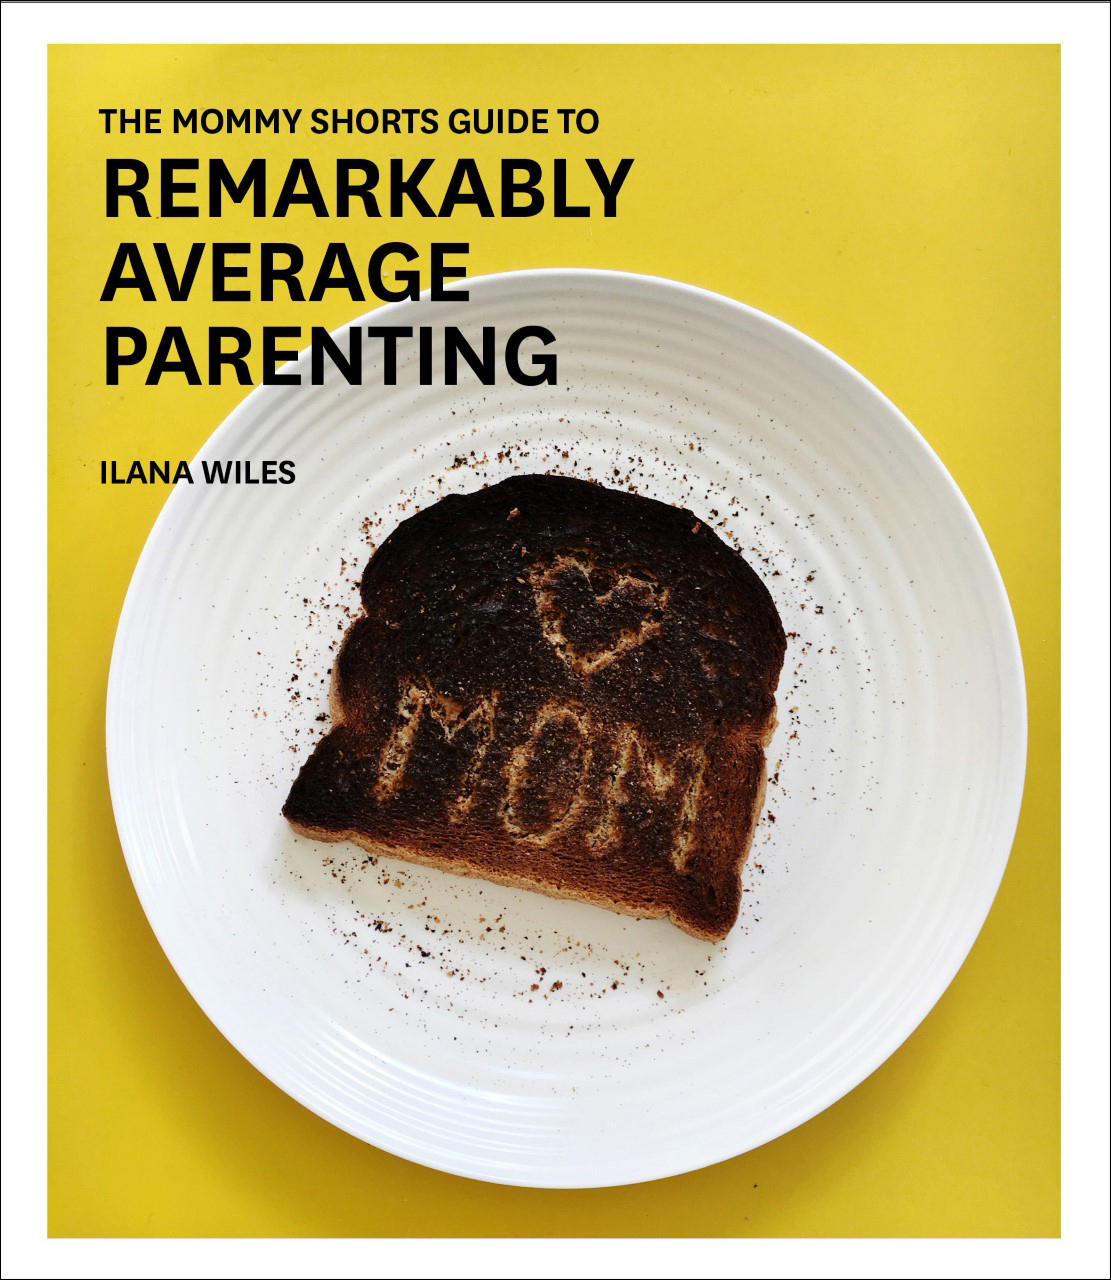 Ilana Wiles's The Mommy Shorts Guide to Remarkably Average Parenting